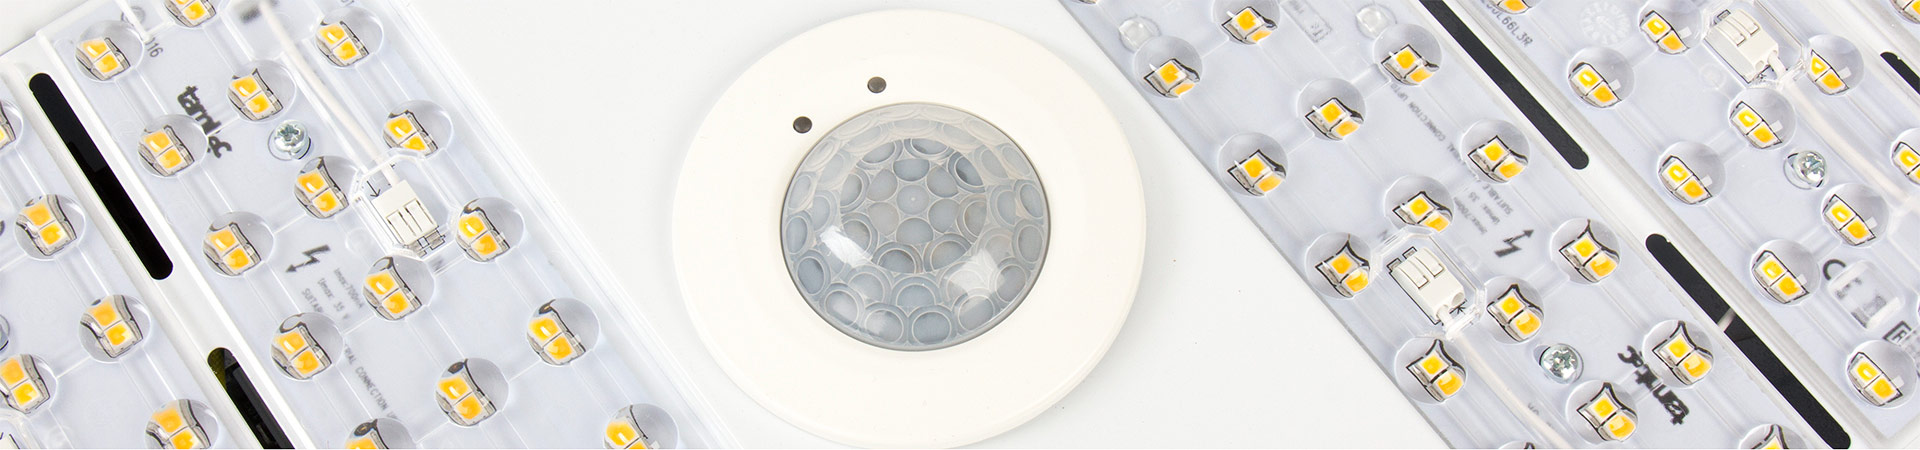 downlights photograph